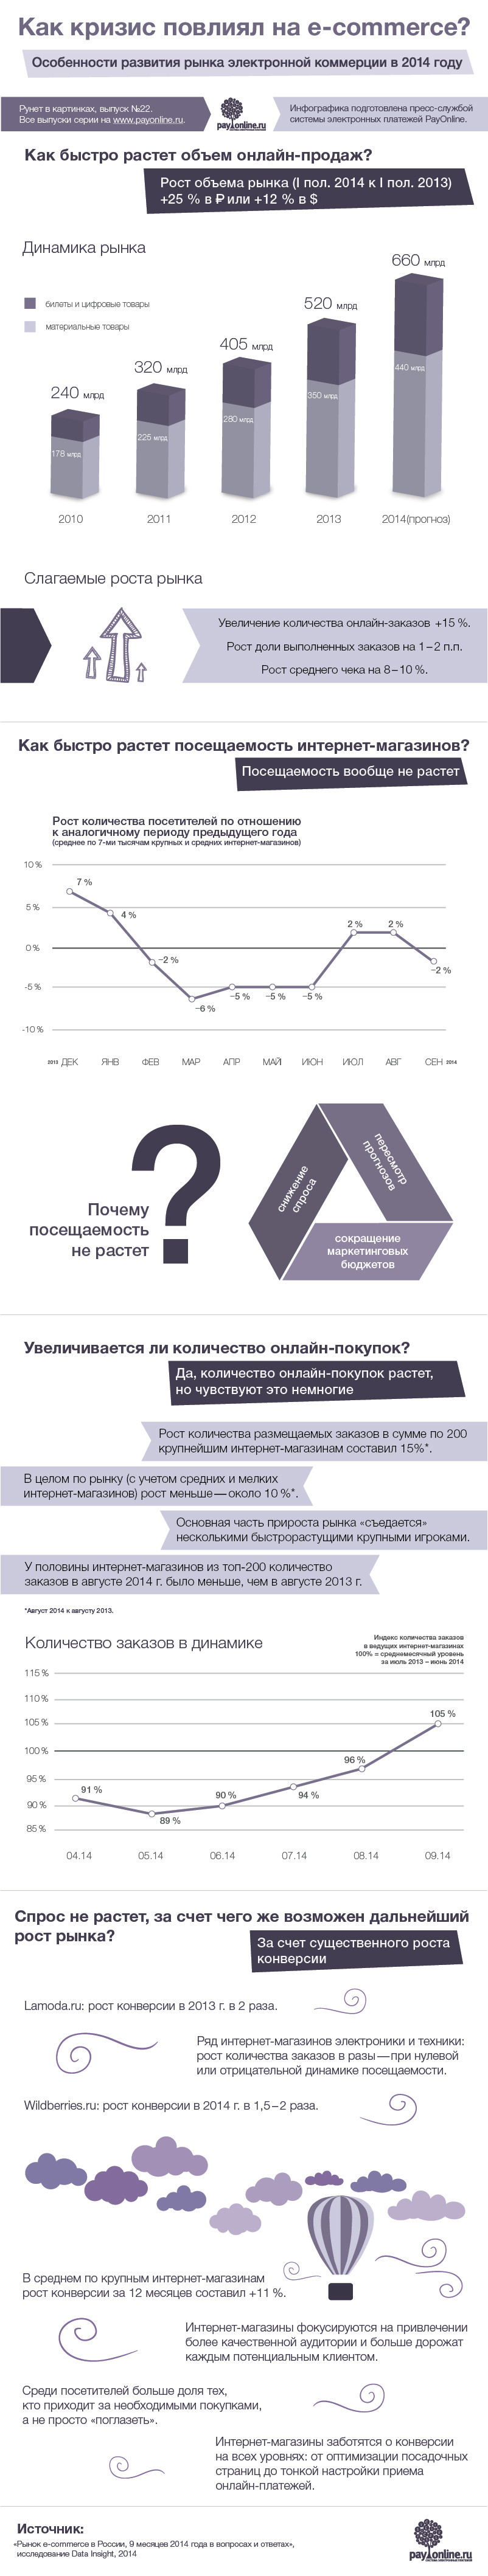 Как кризис повлиял на e-commerce?